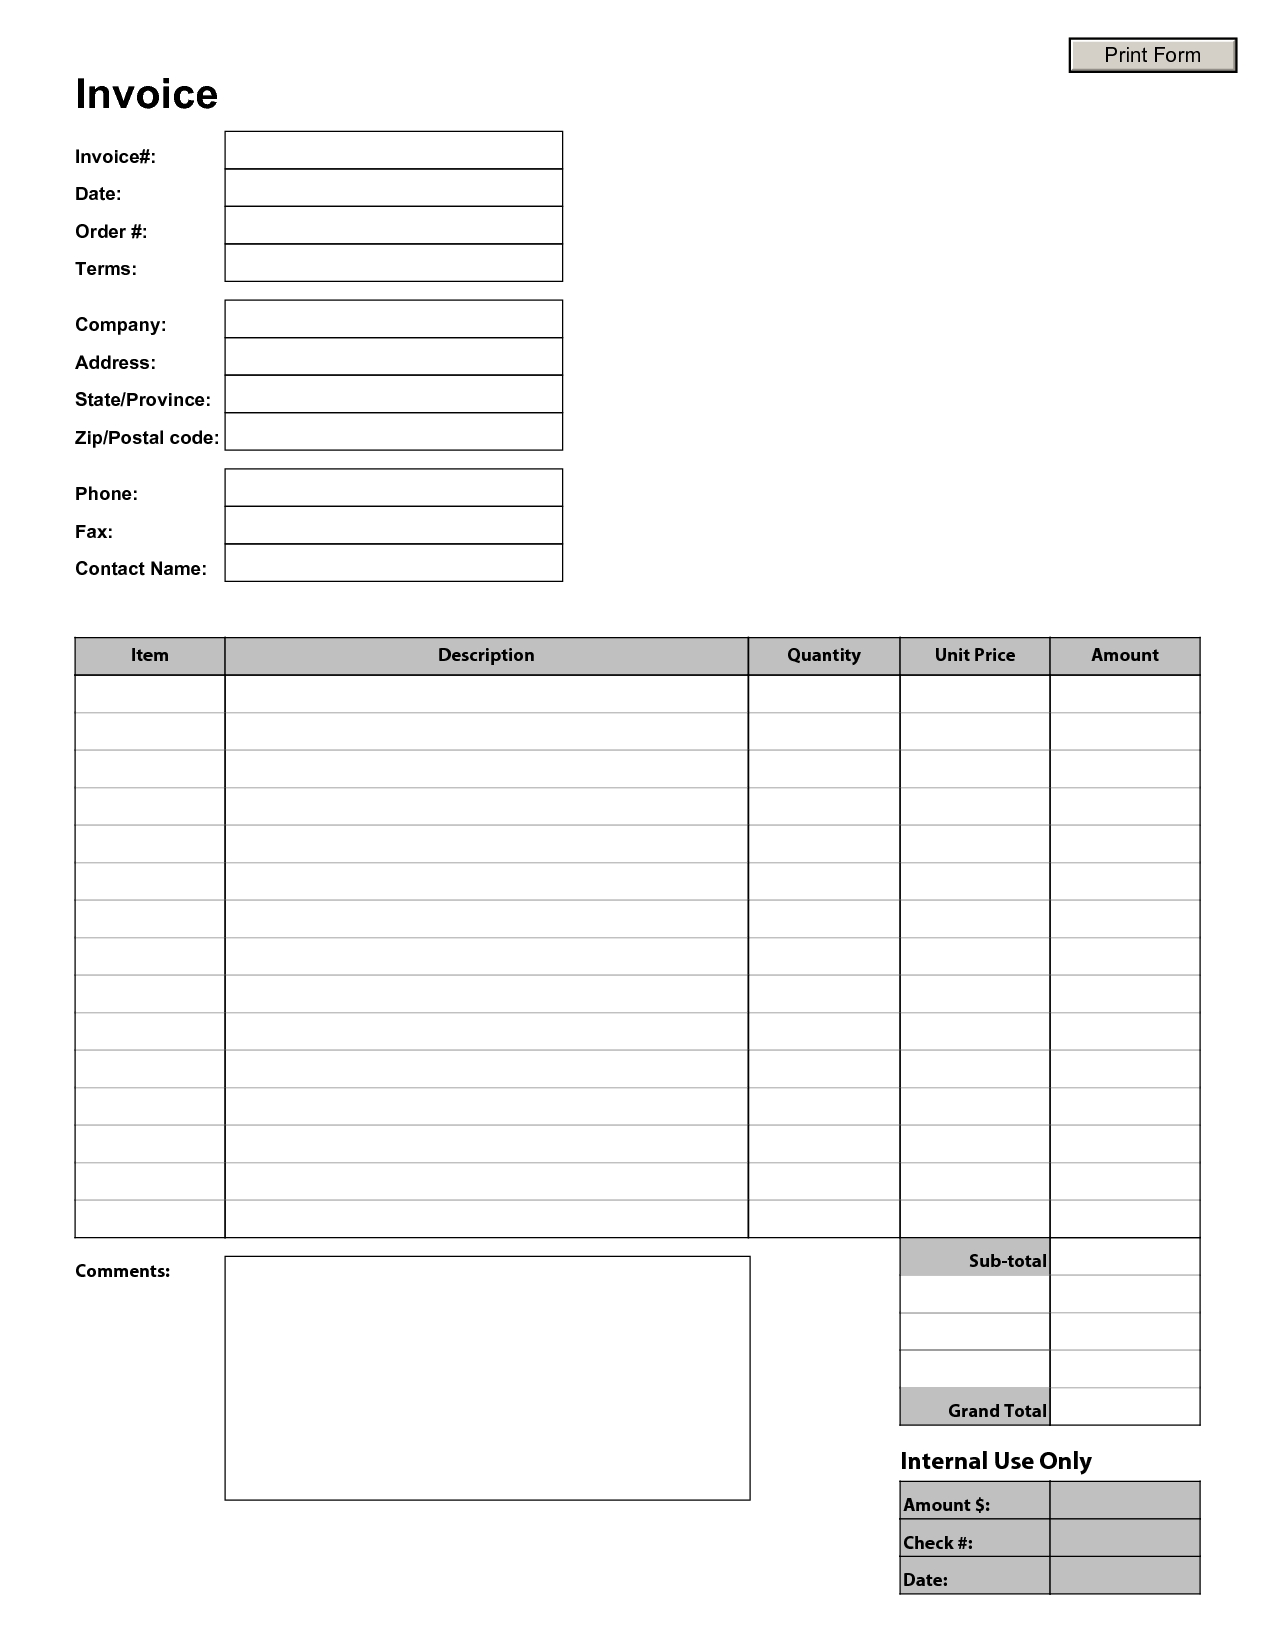 blank invoice sample blank invoice template blank invoice 1275 X 1650